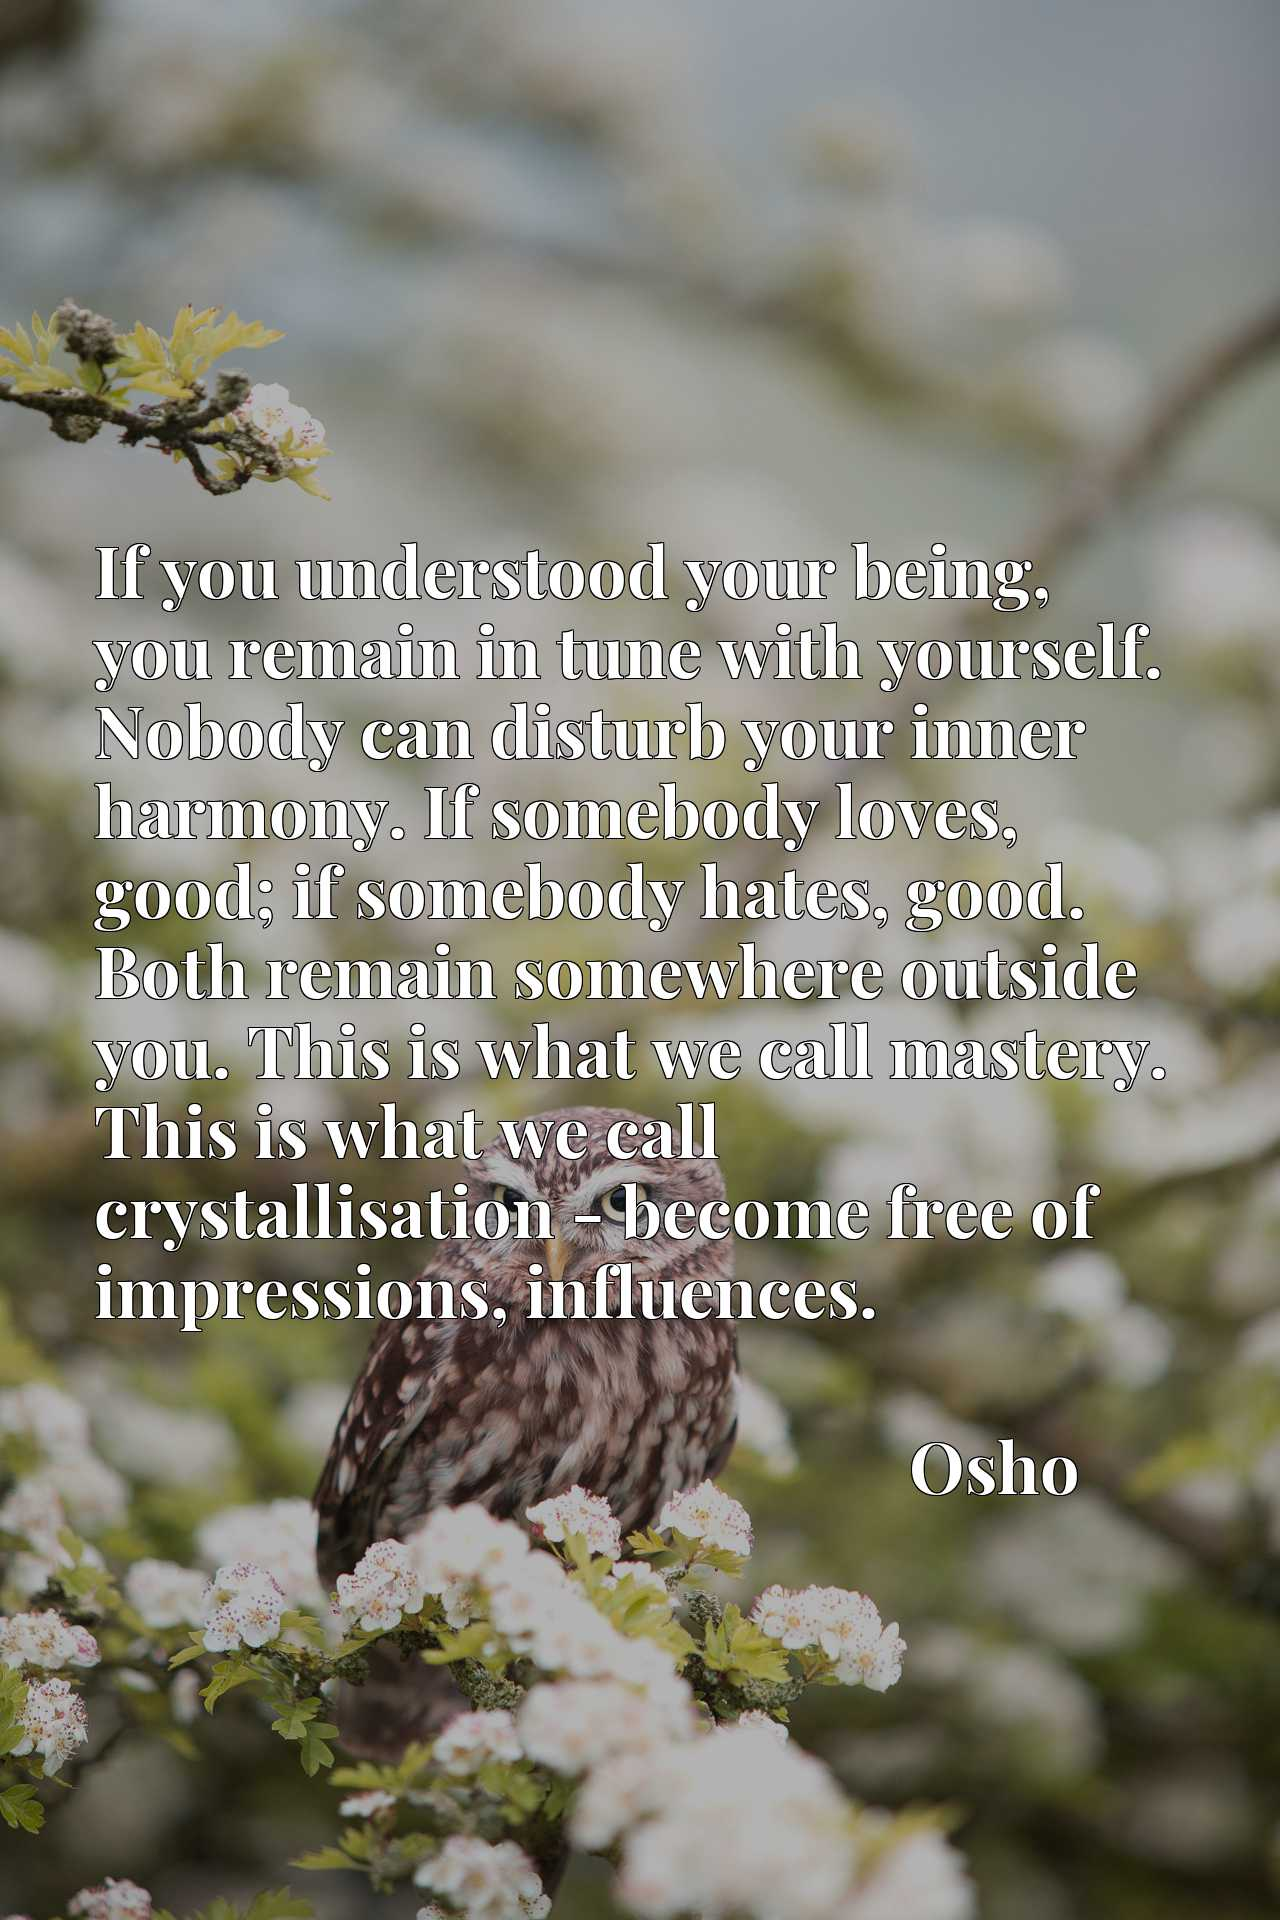 Quote Picture :If you understood your being, you remain in tune with yourself. Nobody can disturb your inner harmony. If somebody loves, good; if somebody hates, good. Both remain somewhere outside you. This is what we call mastery. This is what we call crystallisation - become free of impressions, influences.